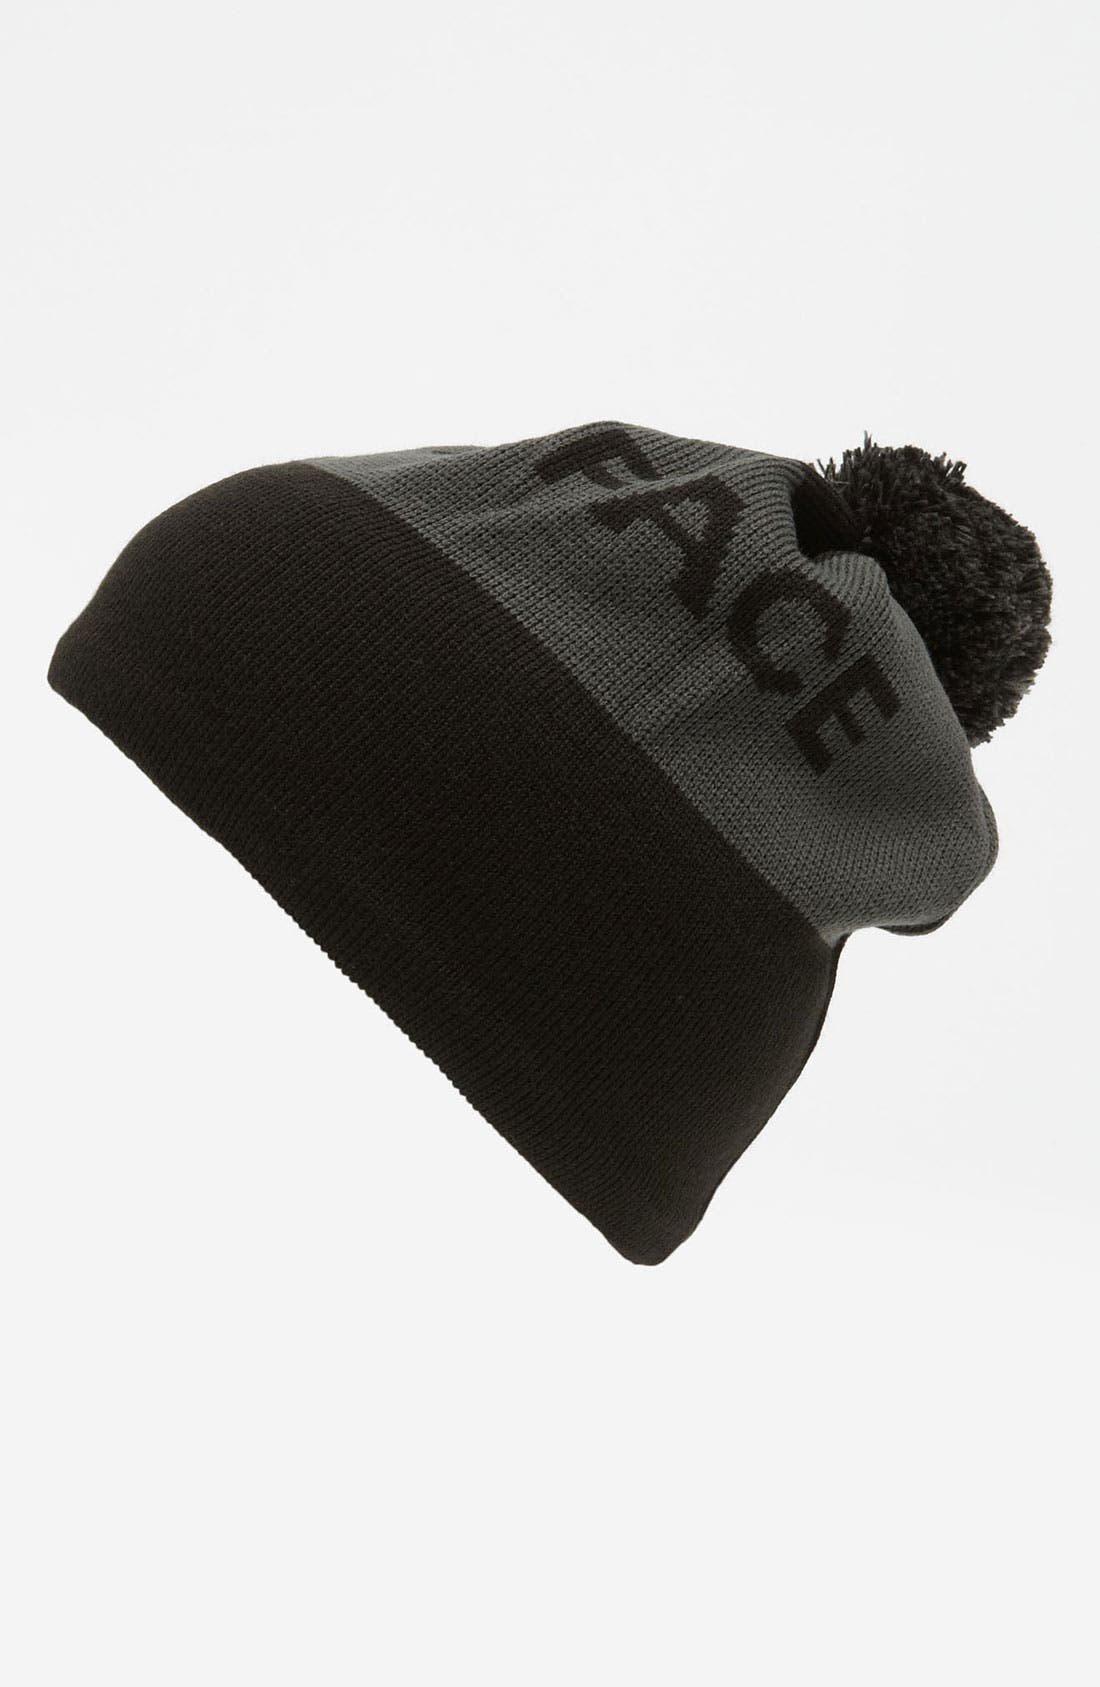 Alternate Image 1 Selected - The North Face 'Throwback' Knit Cap